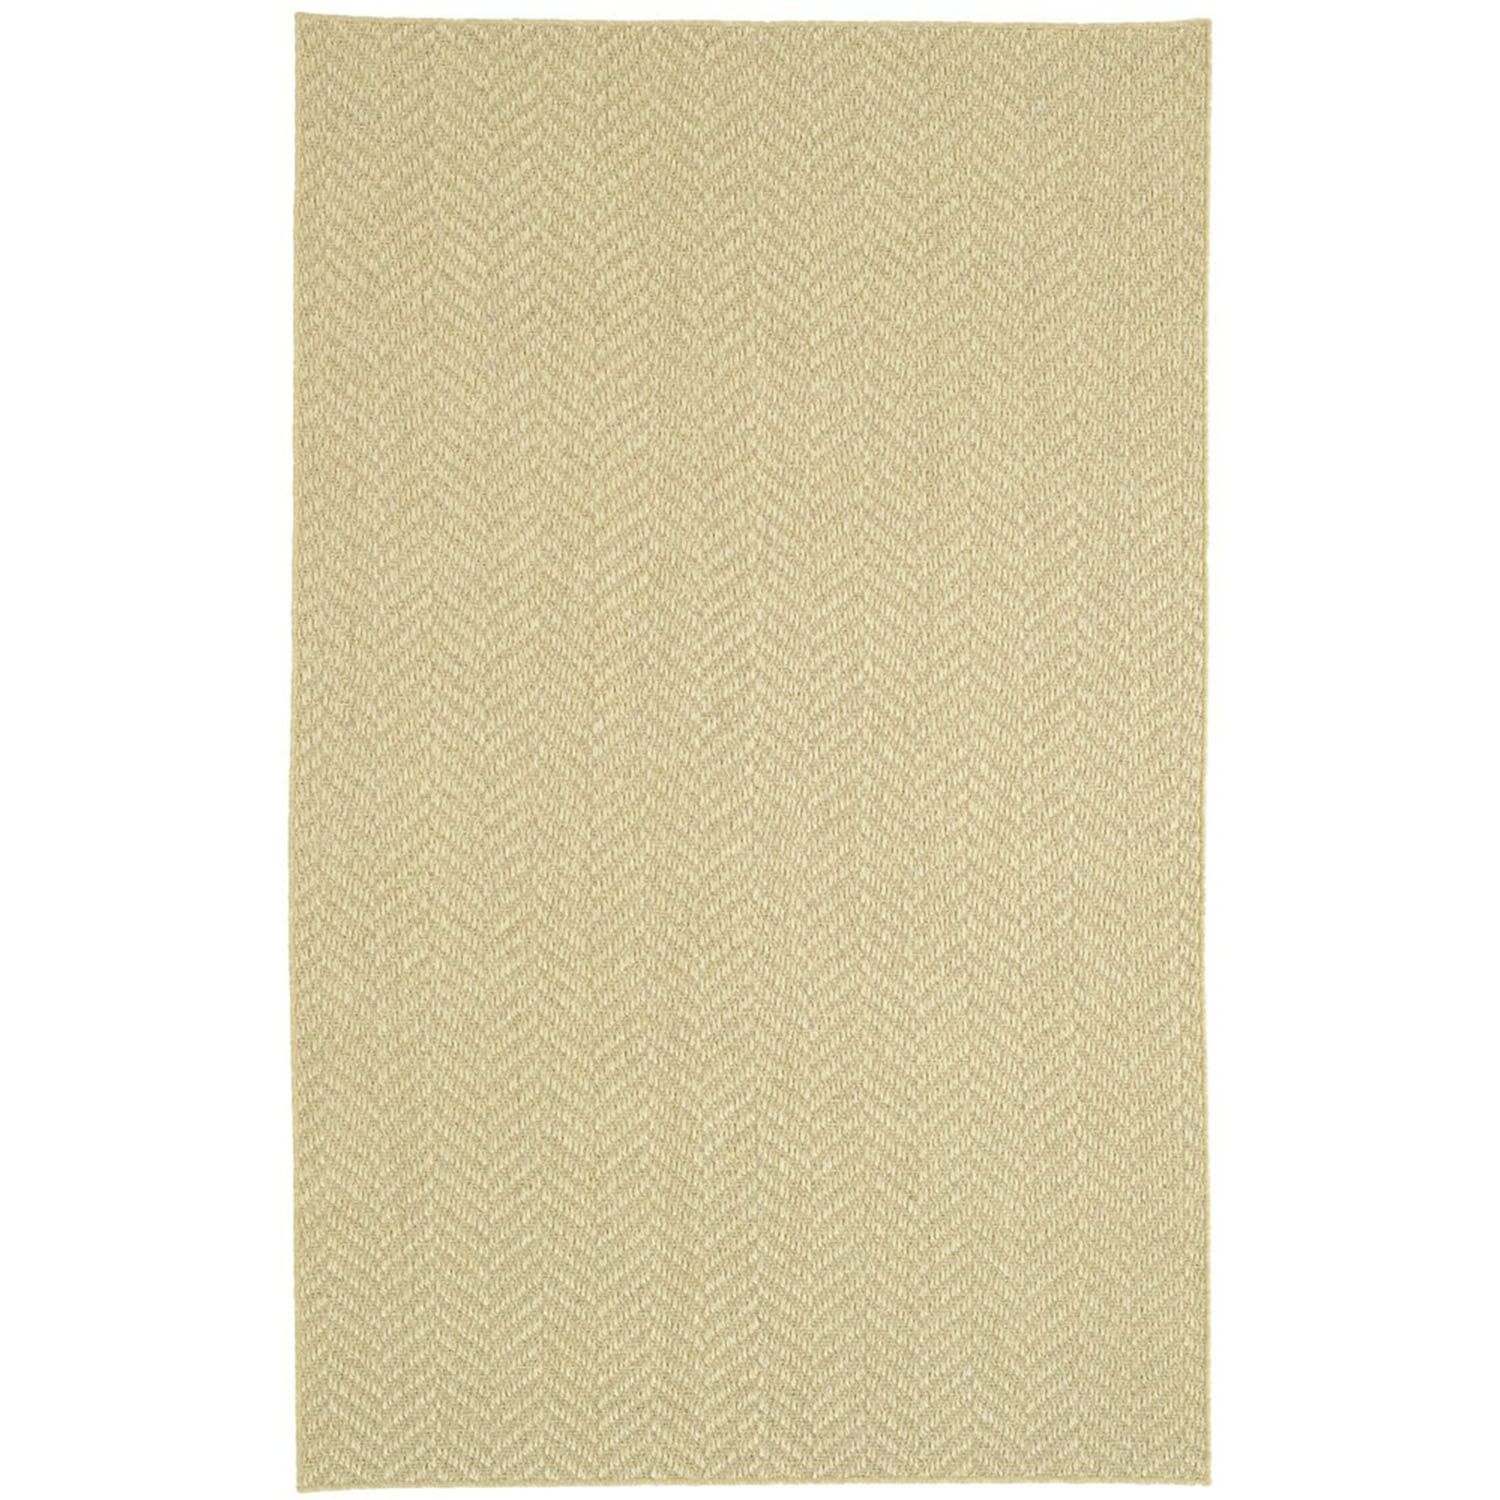 Paige Natural Area Rug Rug Size: 6' x 9'